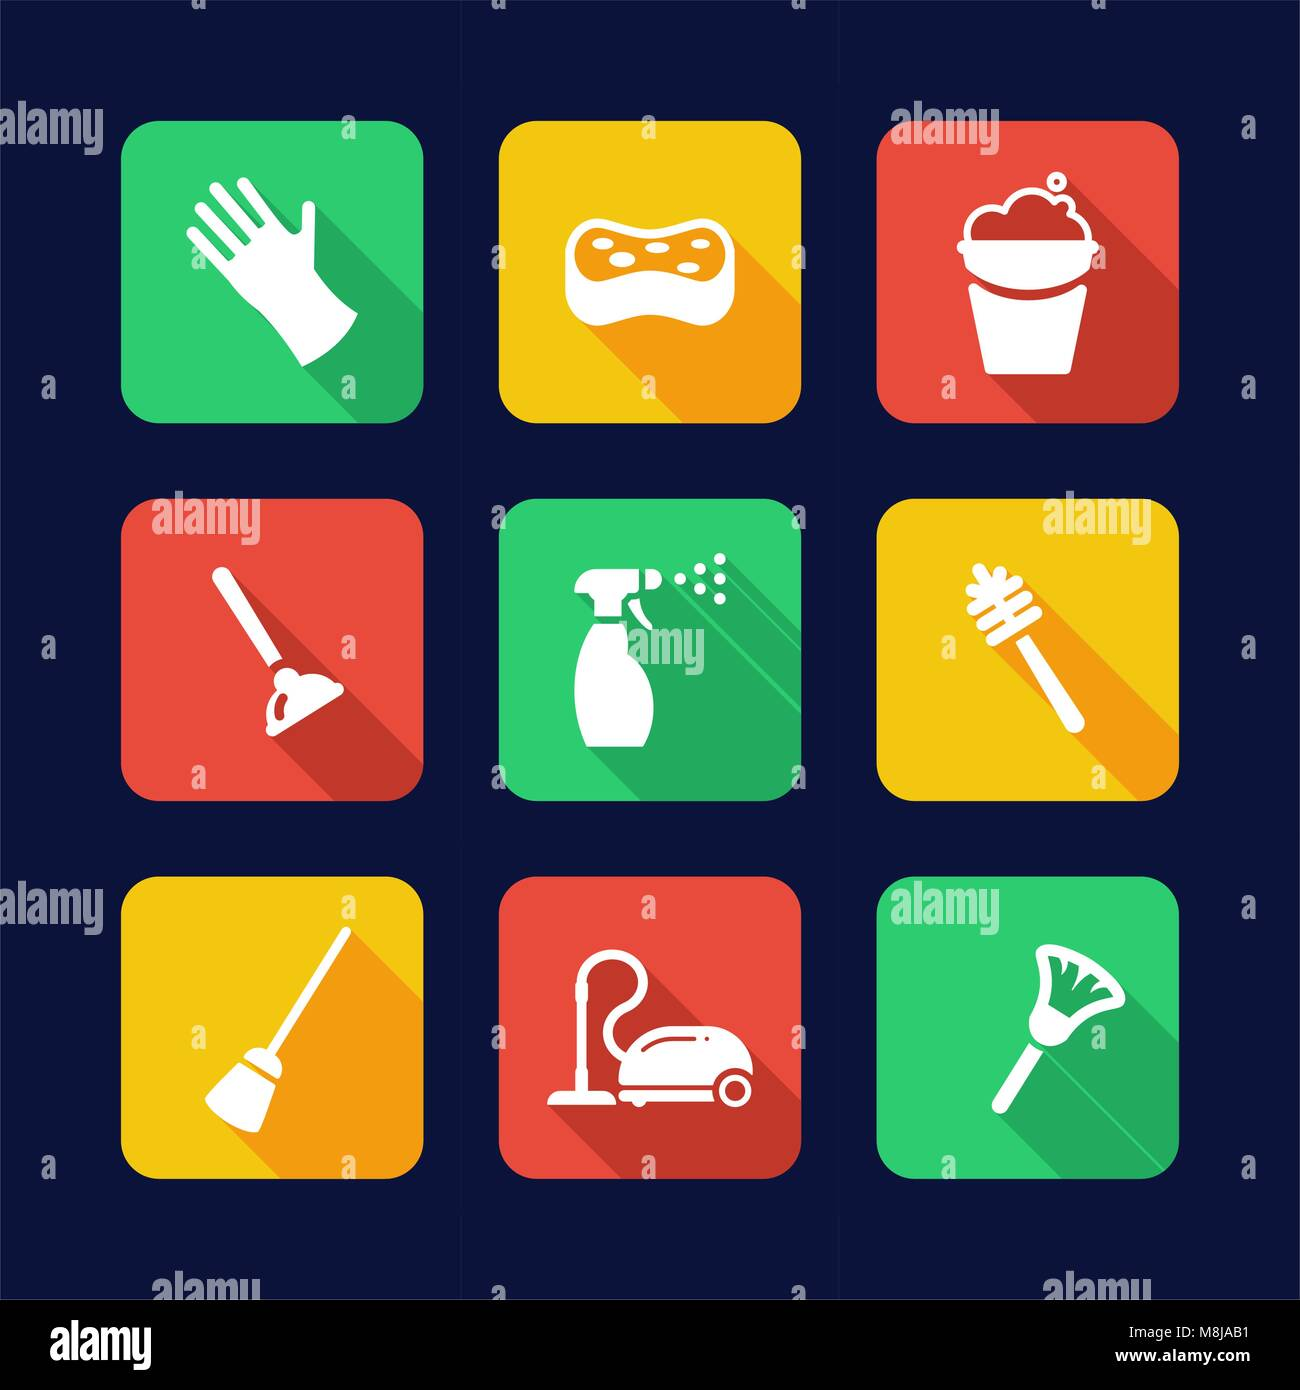 Cleaning Icons Flat Design - Stock Vector